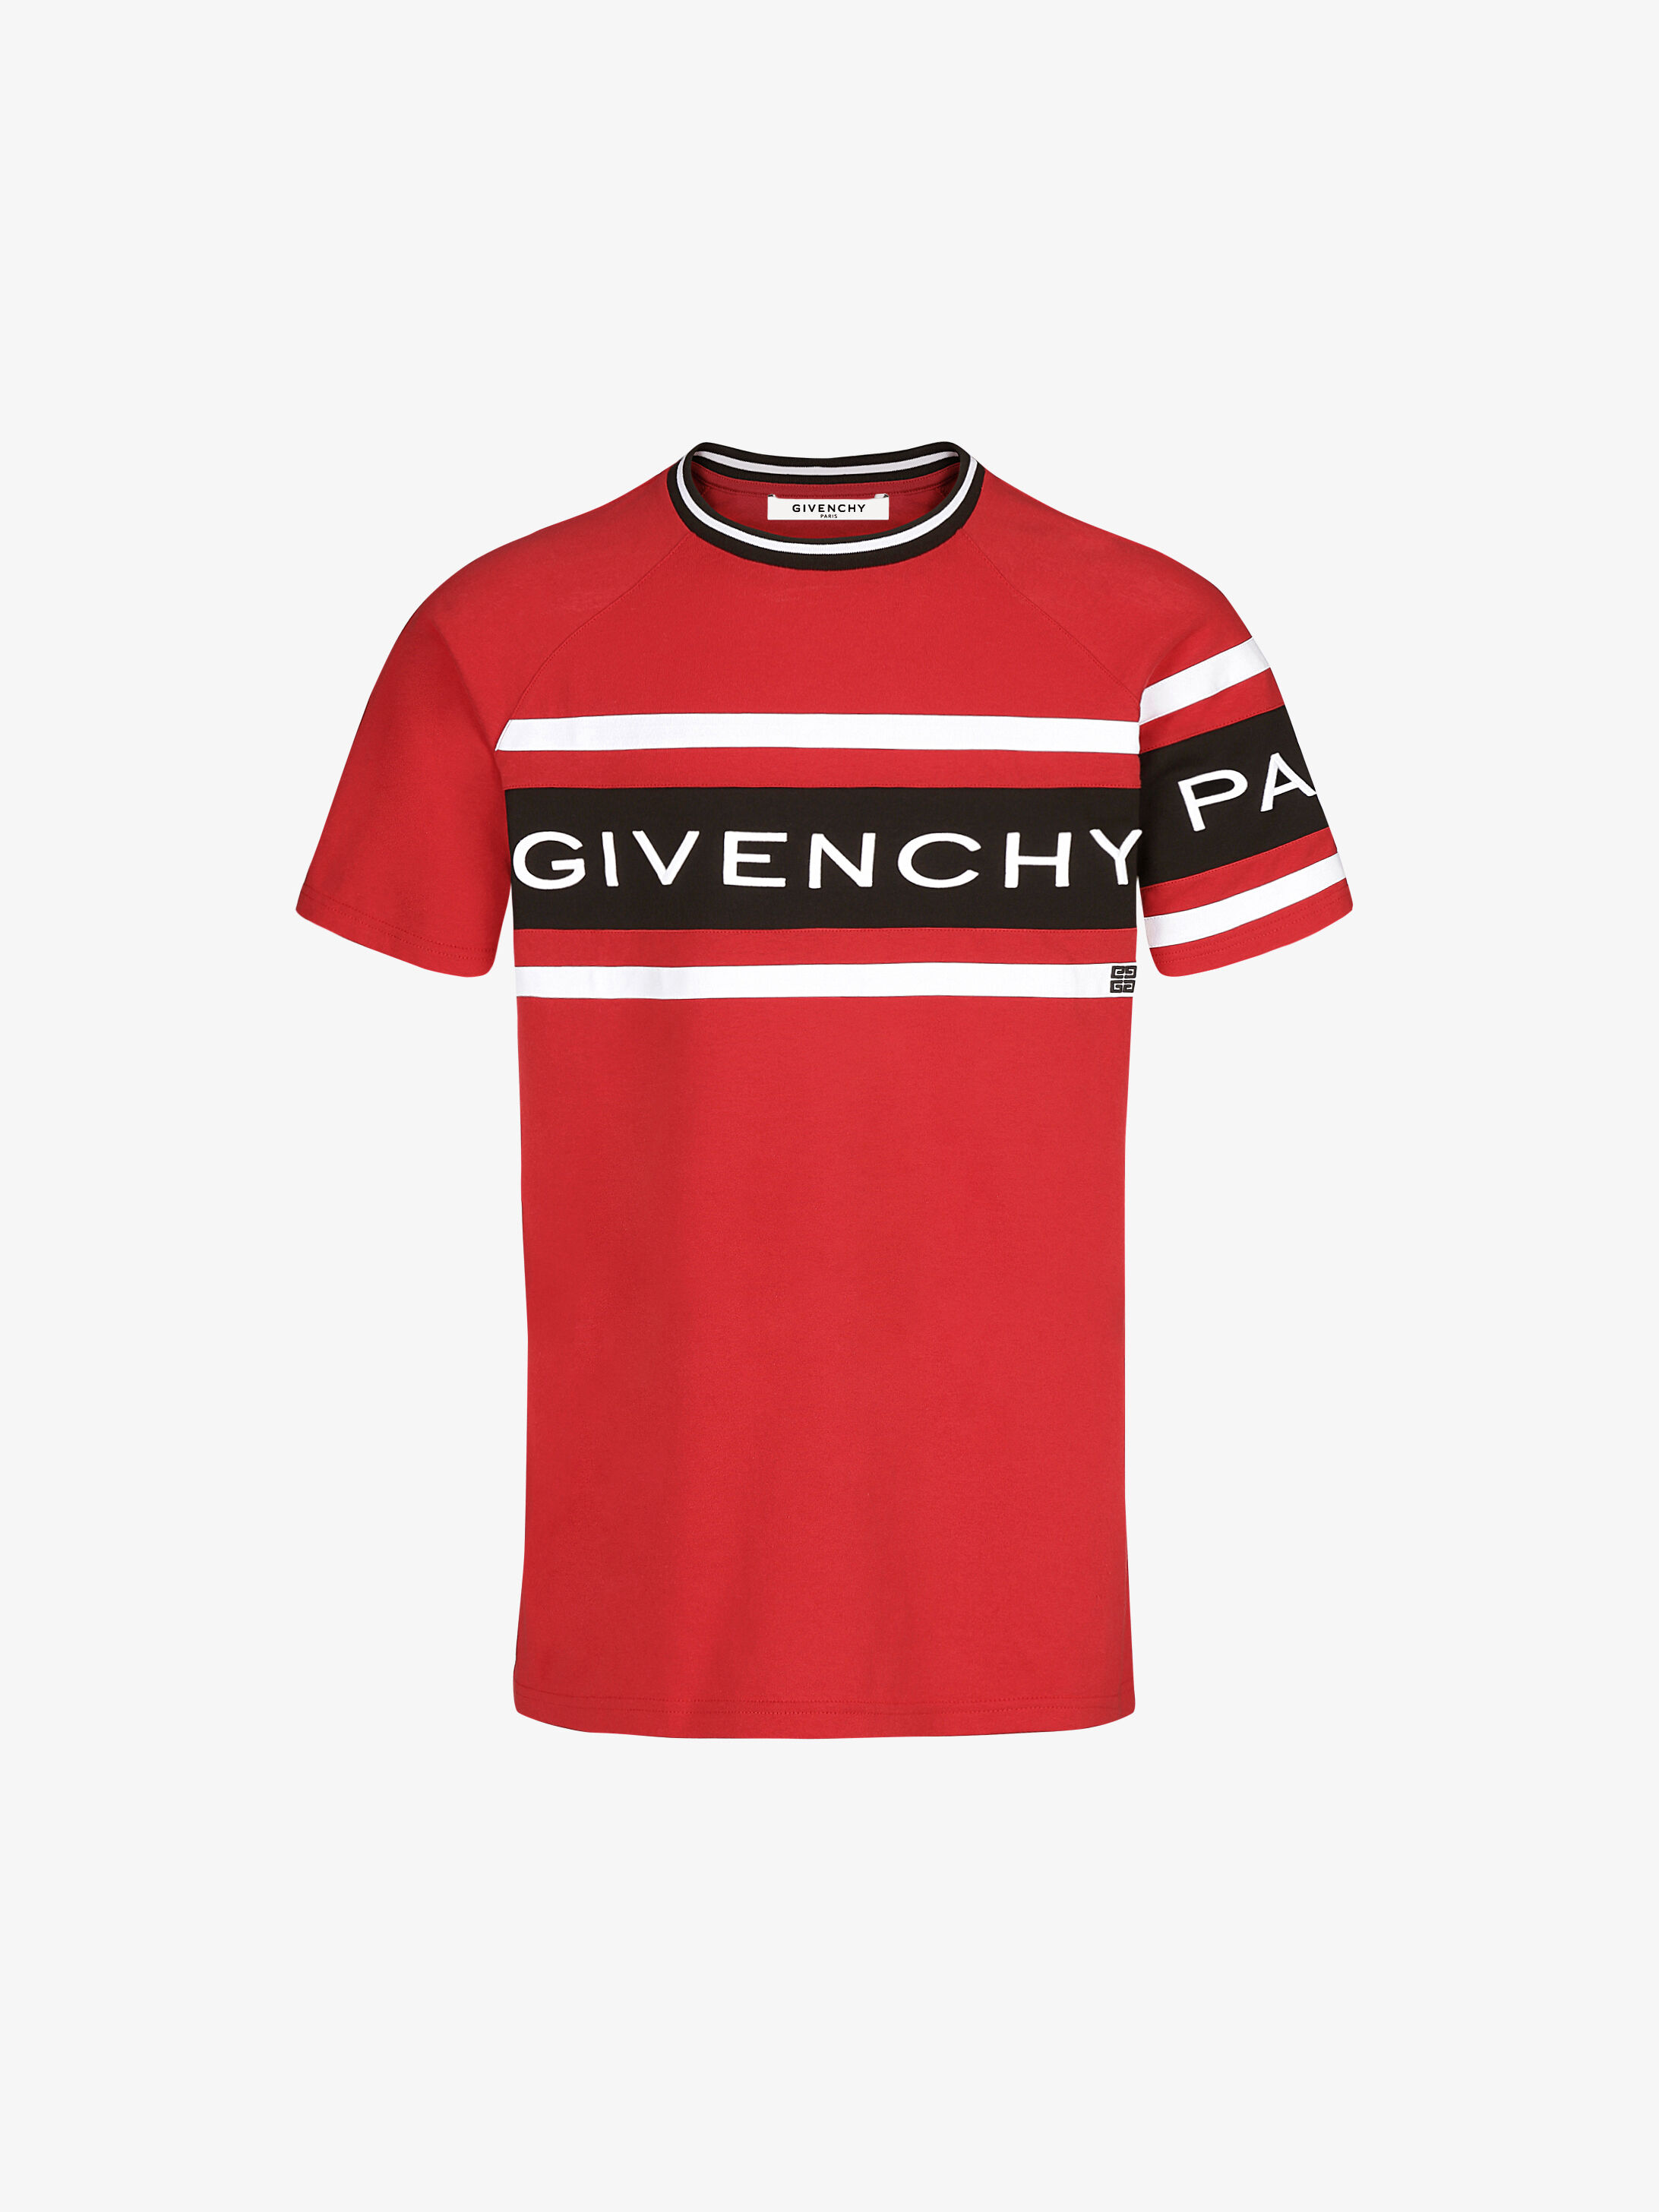 cb23373d Men's T-Shirts collection by Givenchy. | GIVENCHY Paris